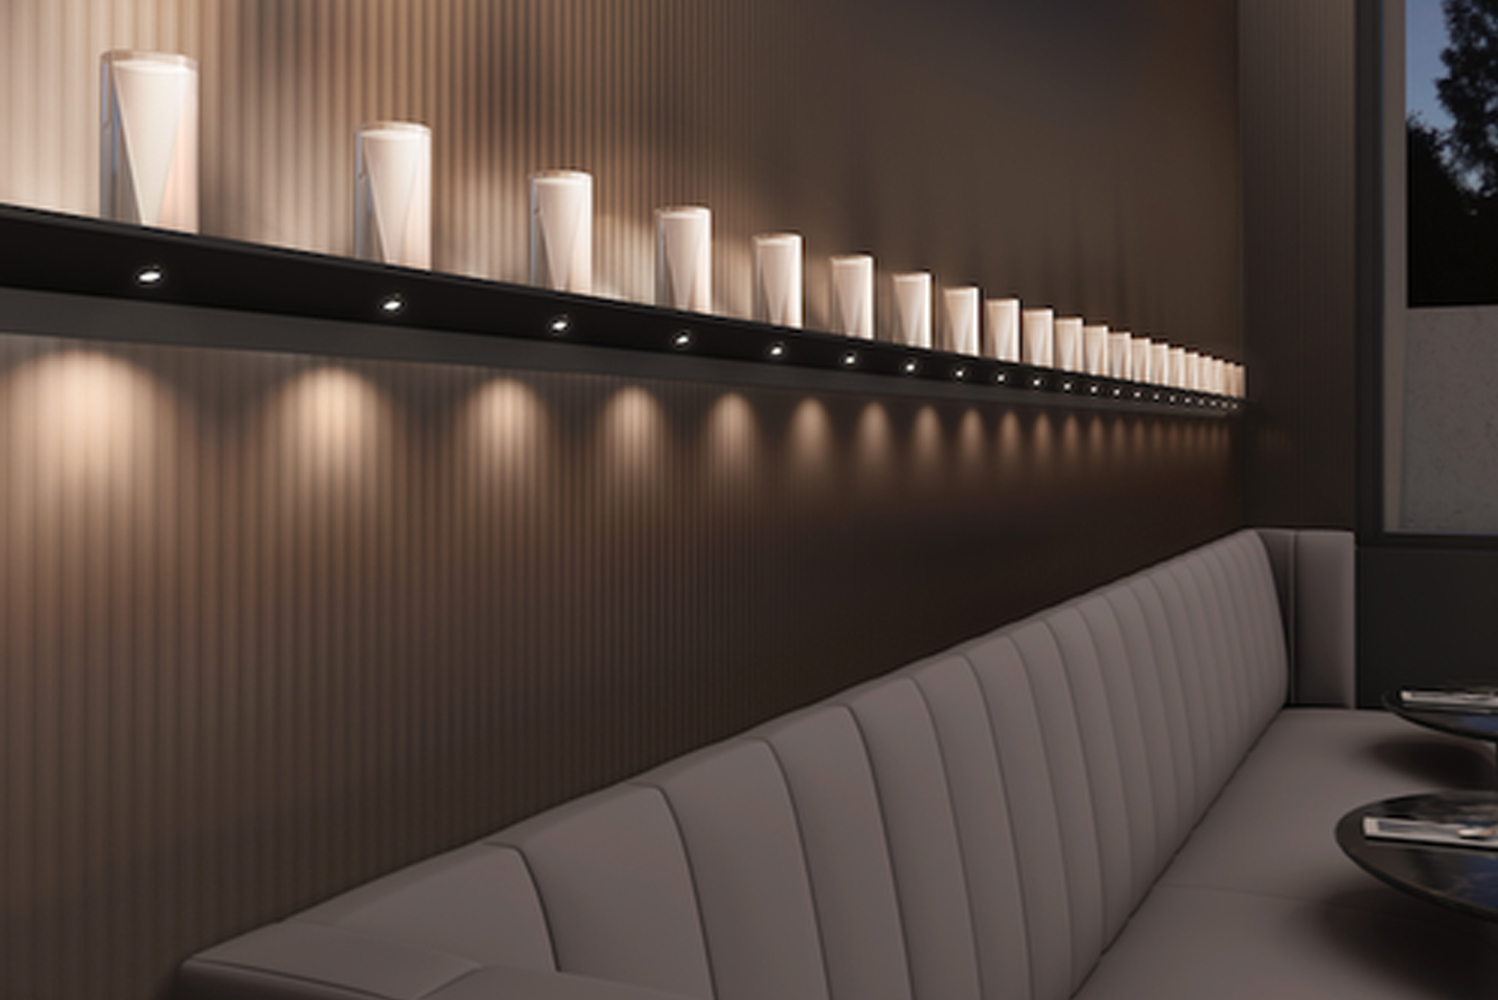 Designed by Robert Sonneman, Votives is available in two varieties.